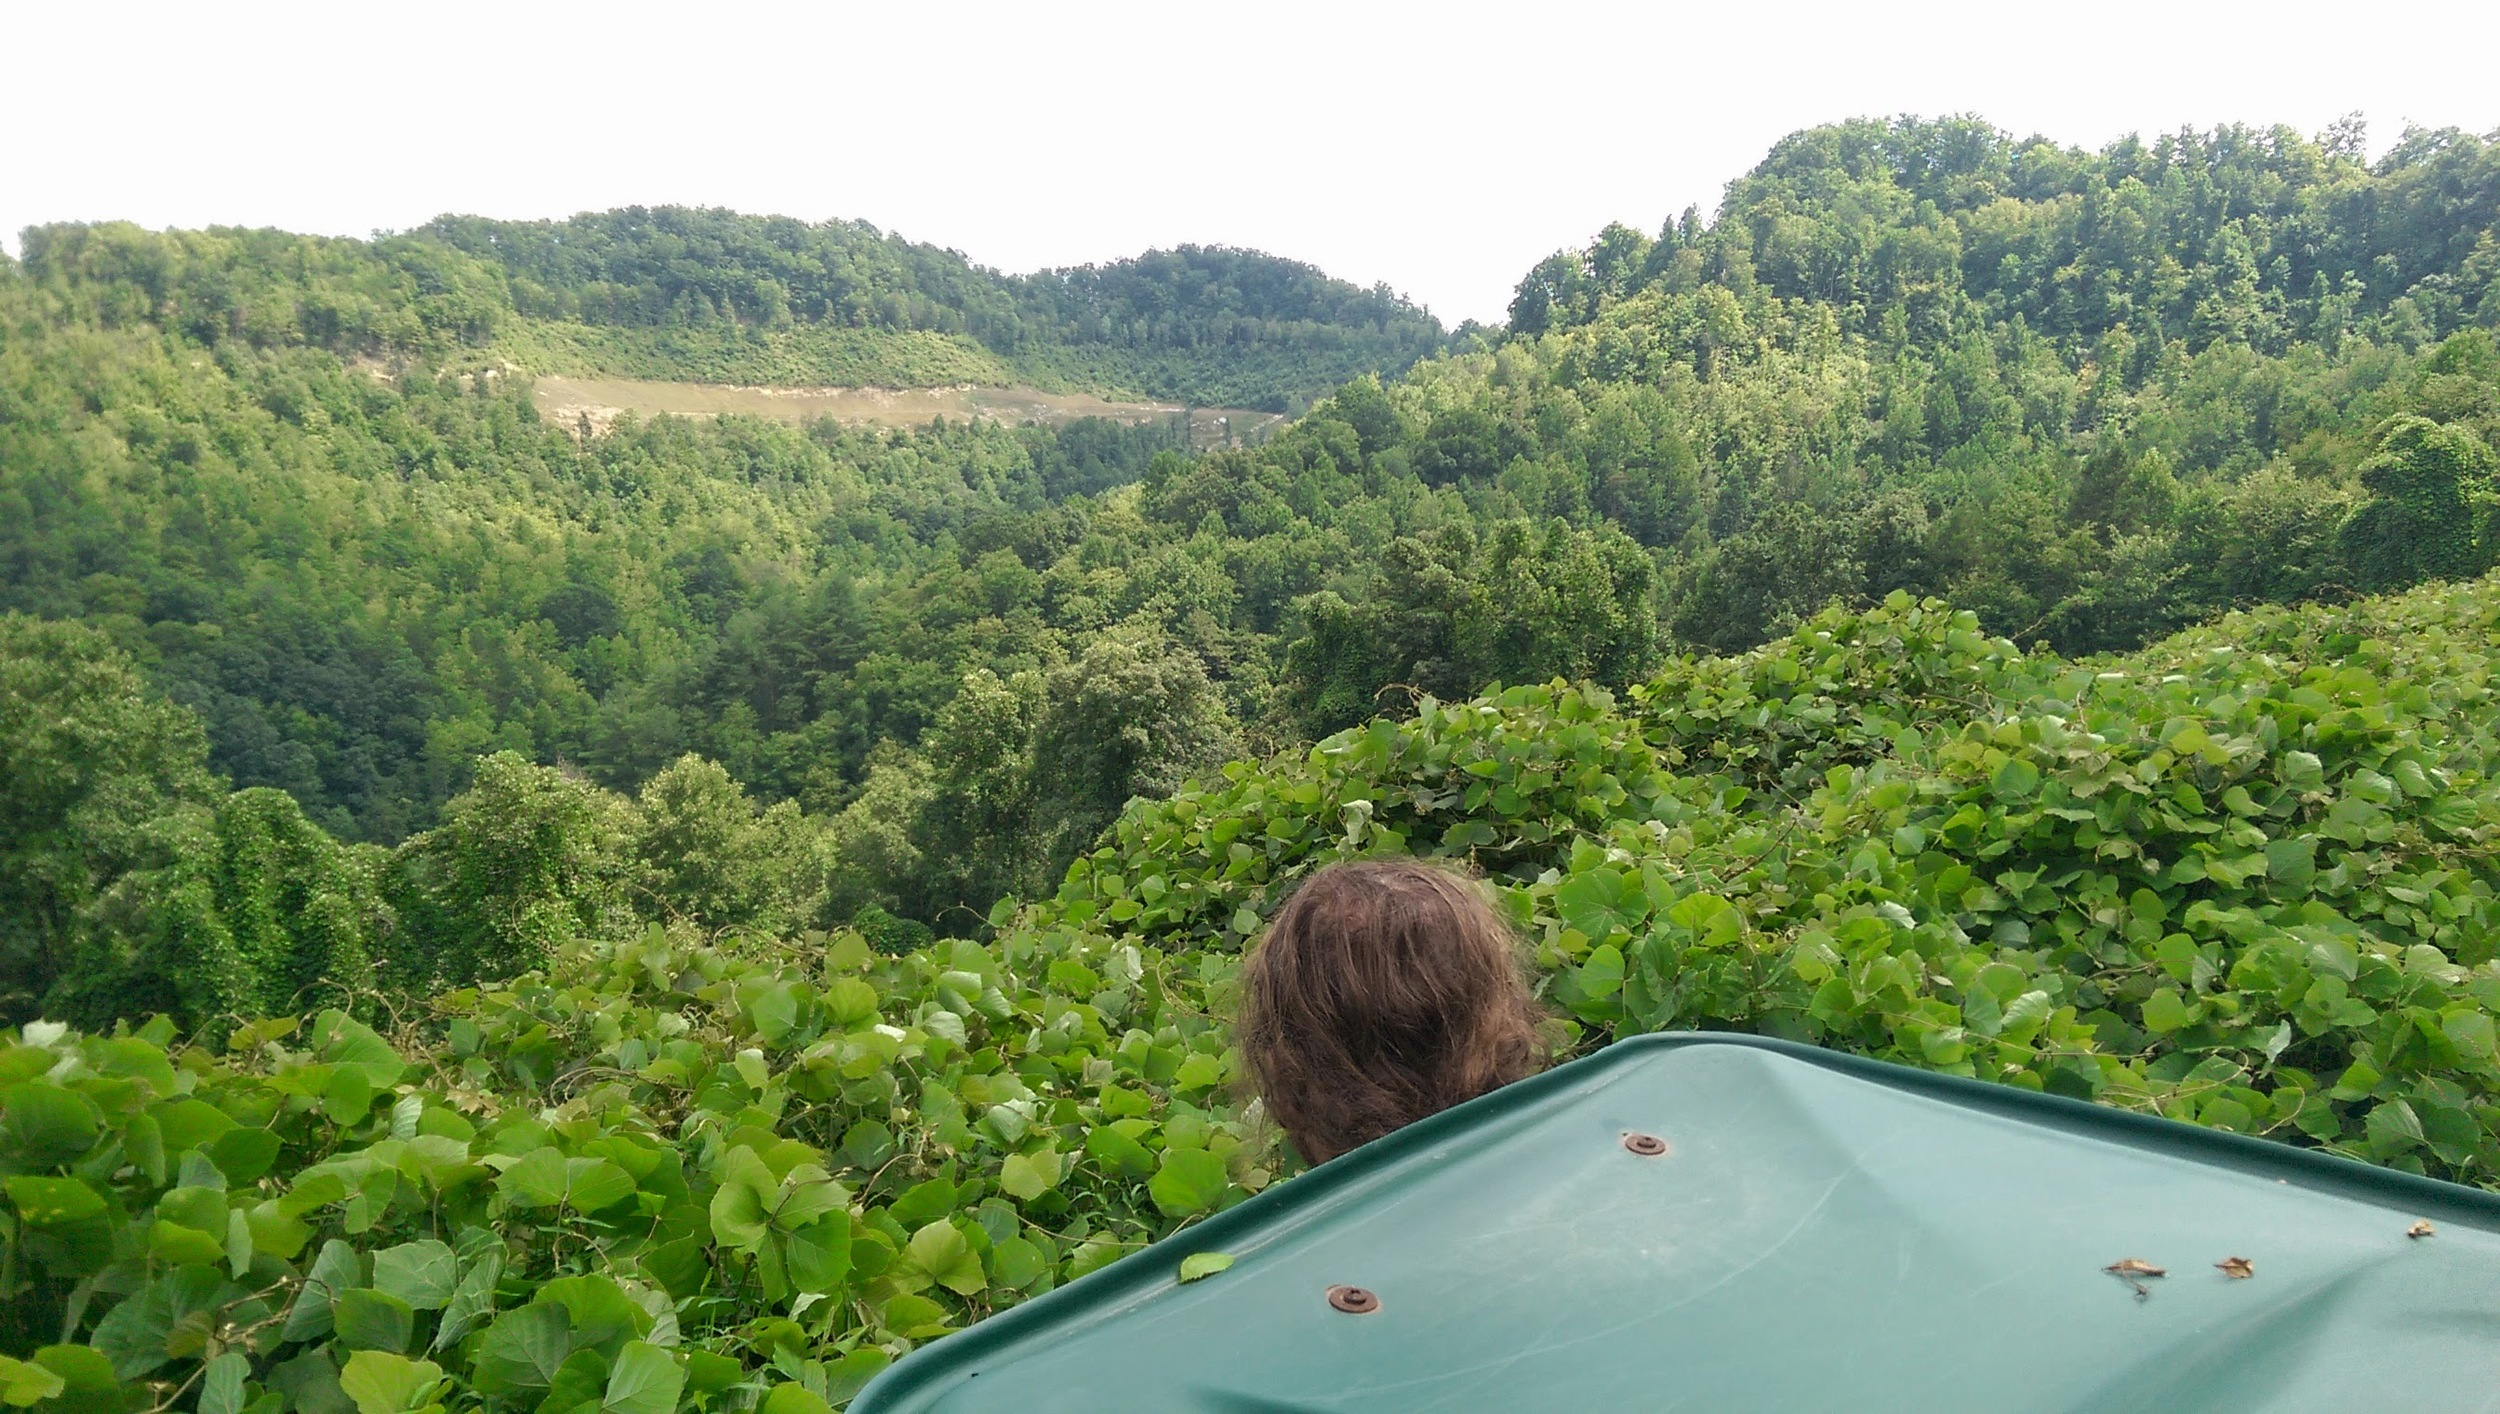 A kudzu vine covered hill side overlooking the Browns Fork section of Hazard, KY . Photo by: Gerry Seavo